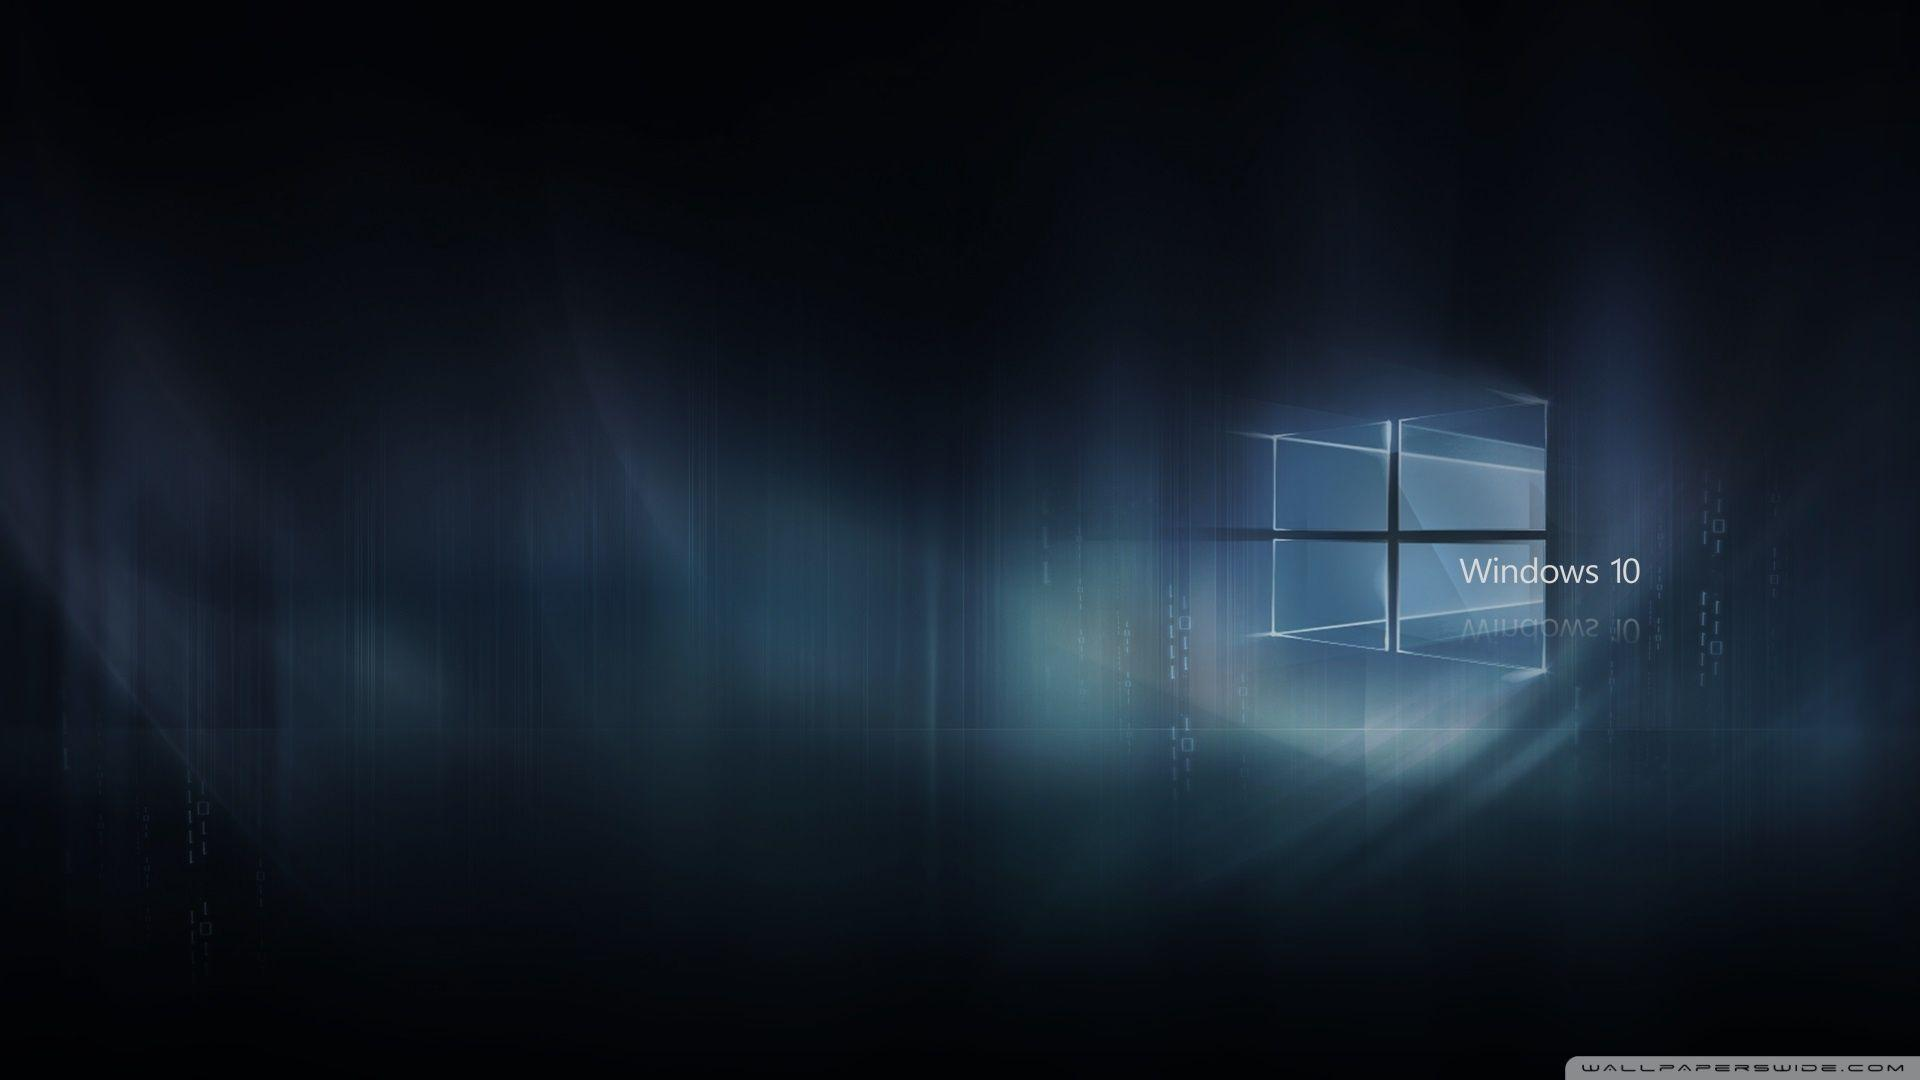 Windows 10 Hd Wallpapers Wallpaper Cave